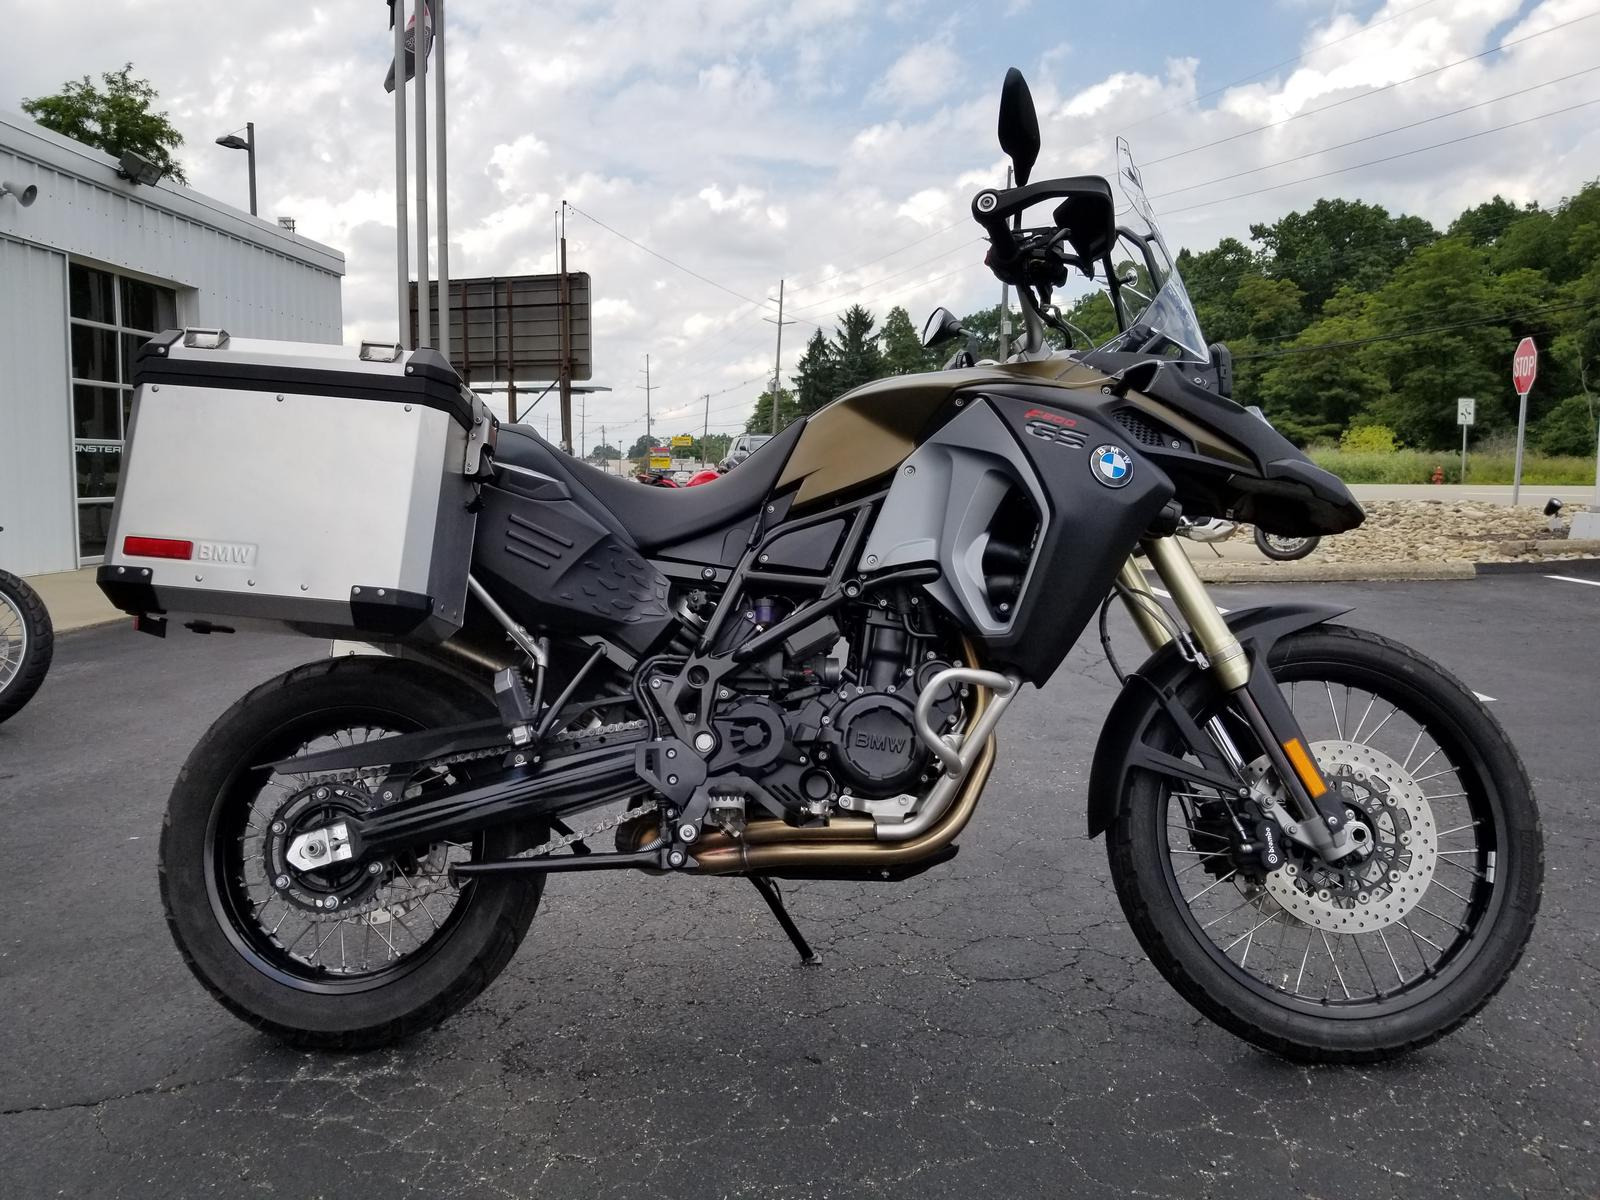 2016 Bmw F800gsa For In Wexford Pa Motorcycles Of Pittsburgh 724 934 4269